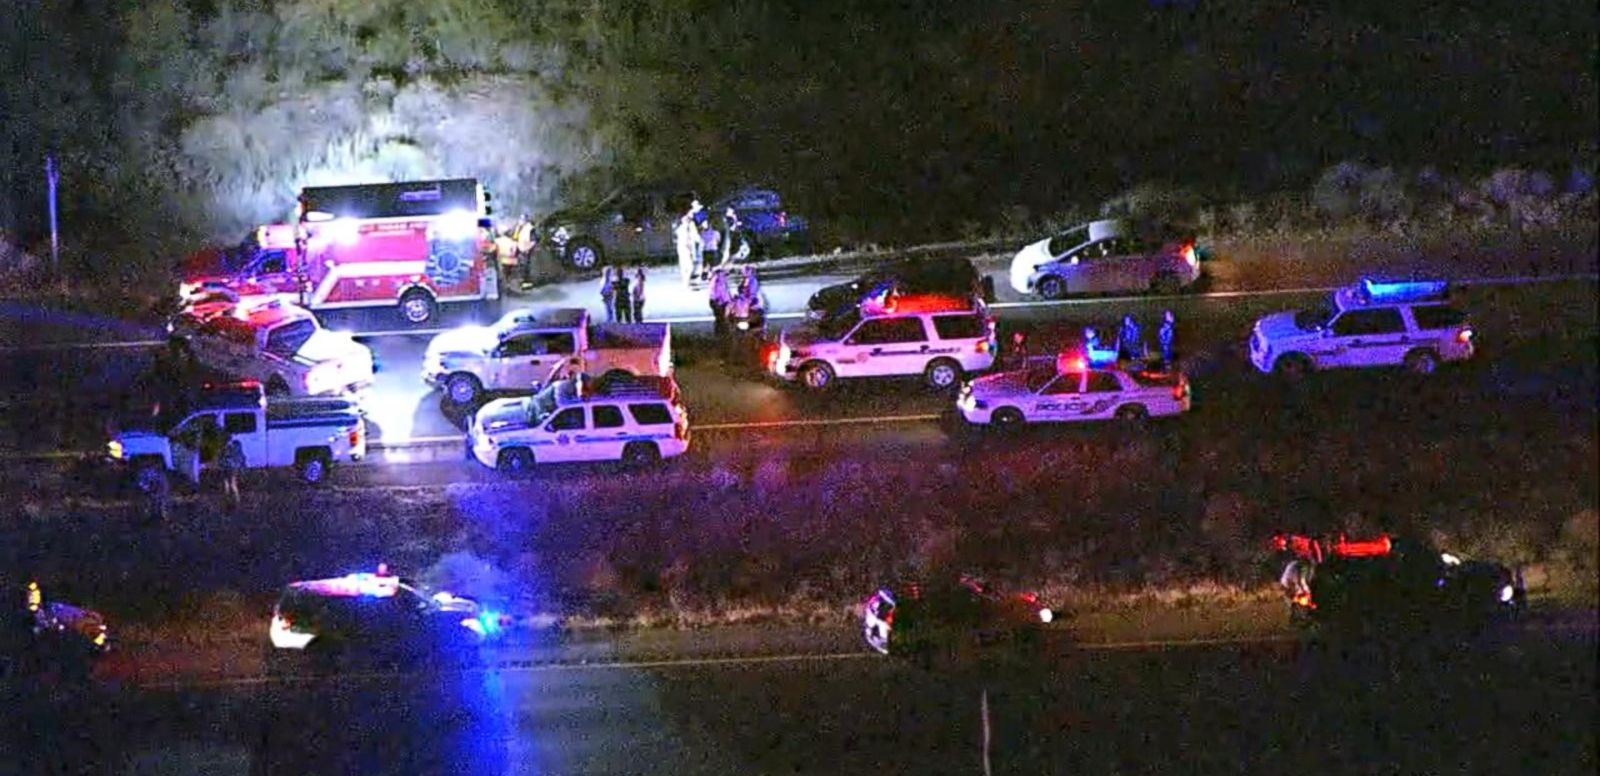 VIDEO: Fear on Arizona Highway as Gunman Fires at Cars, Wounding 2